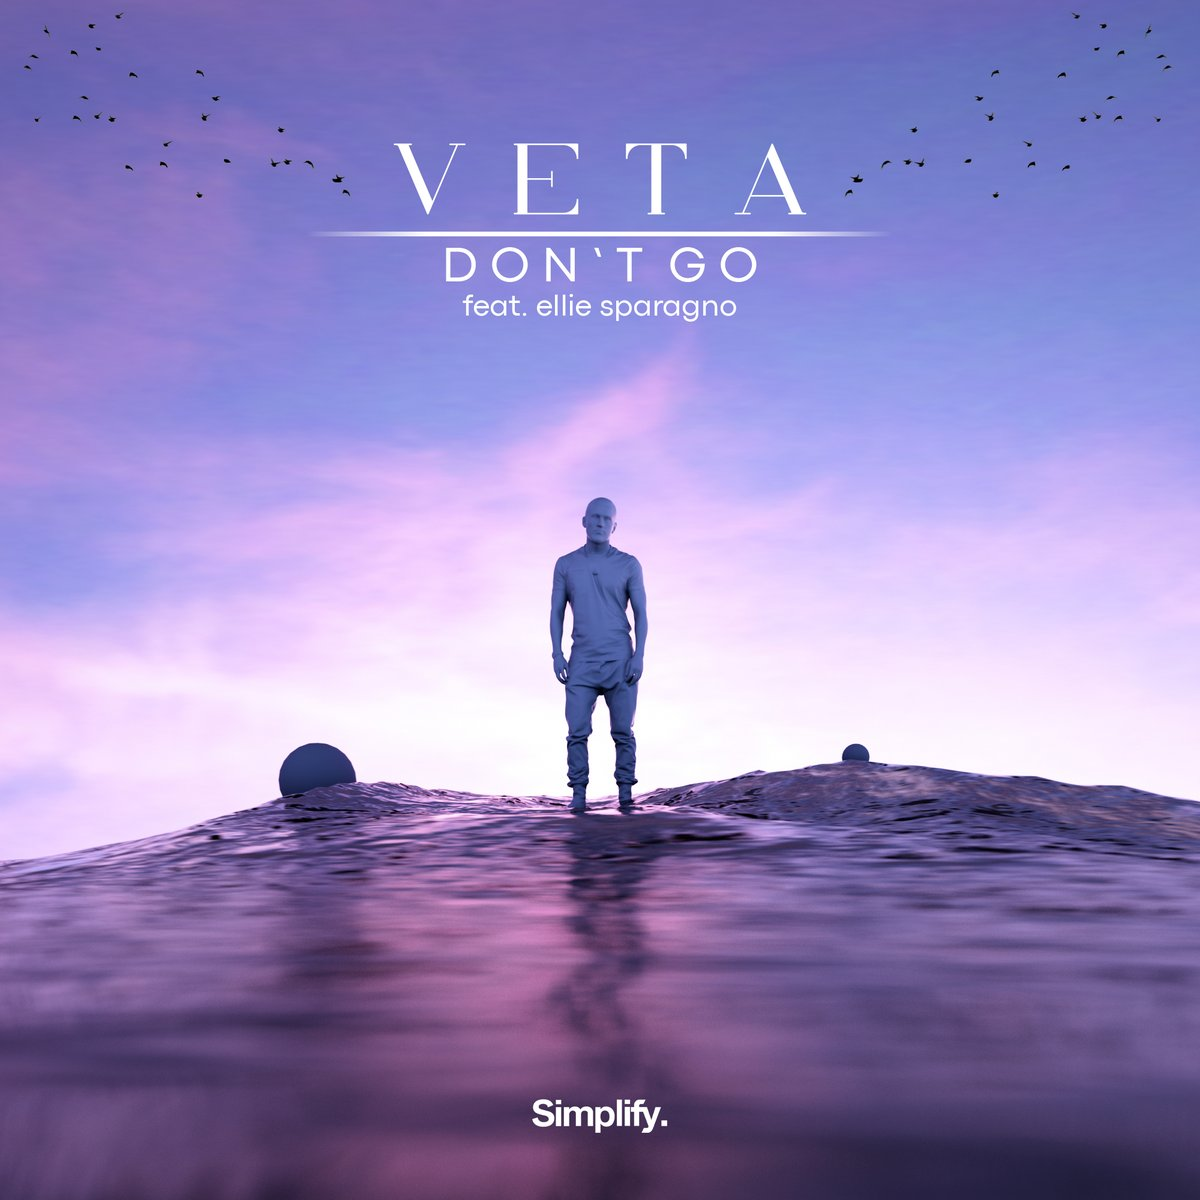 Don't Go w/ @elliesparagno  Out February 28 on @SimplifyRecs  #music #thisisveta #elliesparagno #simplifyrecs #dontgo #producer #musician #futurebass #futurehouse #bassmusic #instagood #photooftheday #instafollow #model #happy #love #followback #work #instacool #instapic #f4fpic.twitter.com/HE5Vw8RbEi